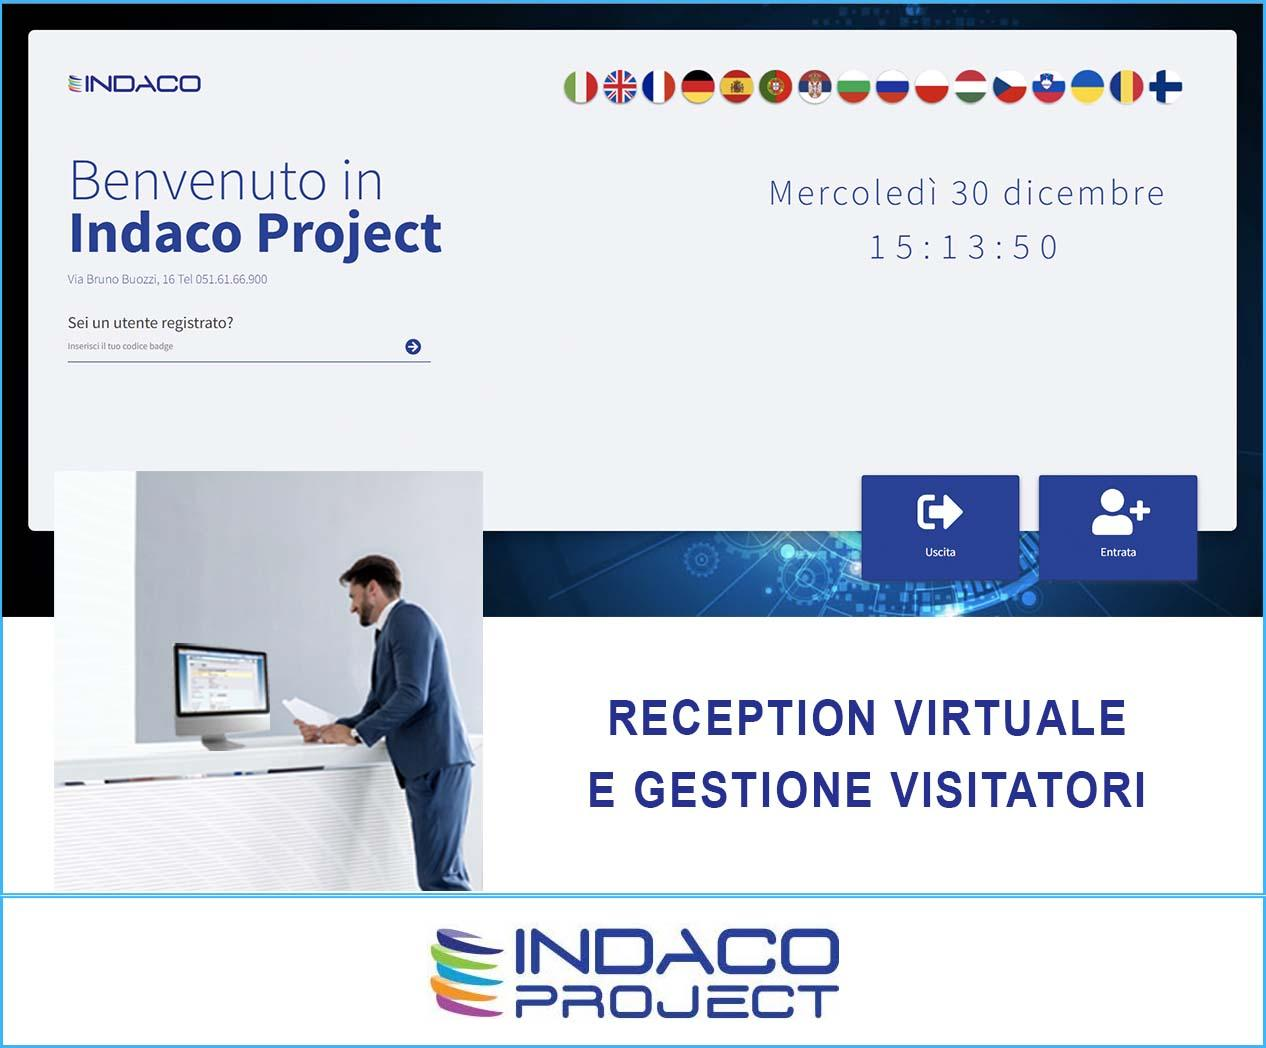 RECEPTION VIRTUALE E AUTOREGISTRAZIONE VISITATORI